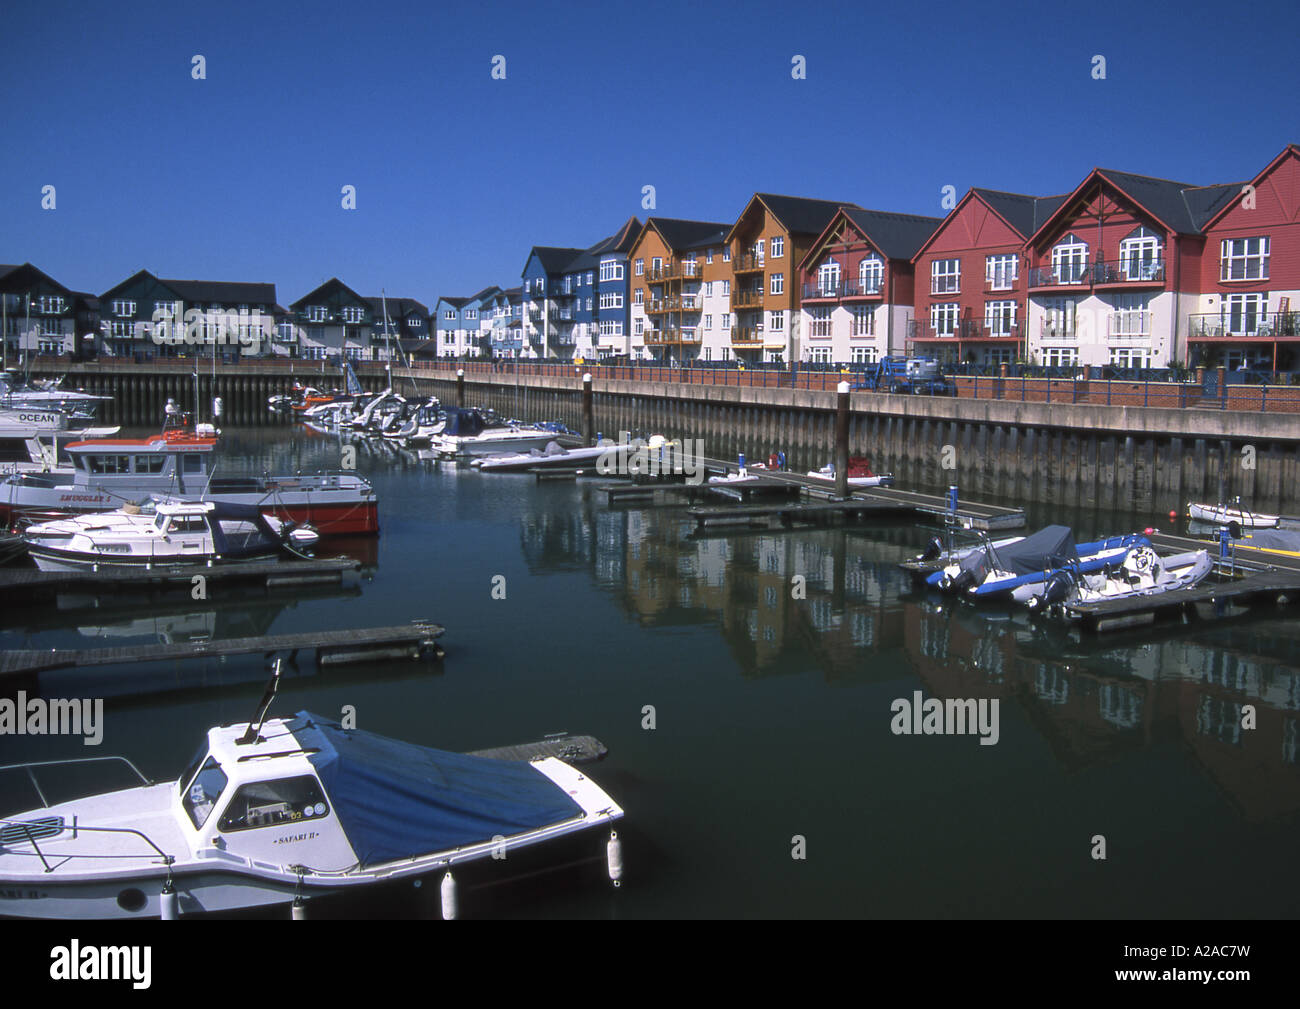 The Marina development at Exmouth, South Devon - Stock Image